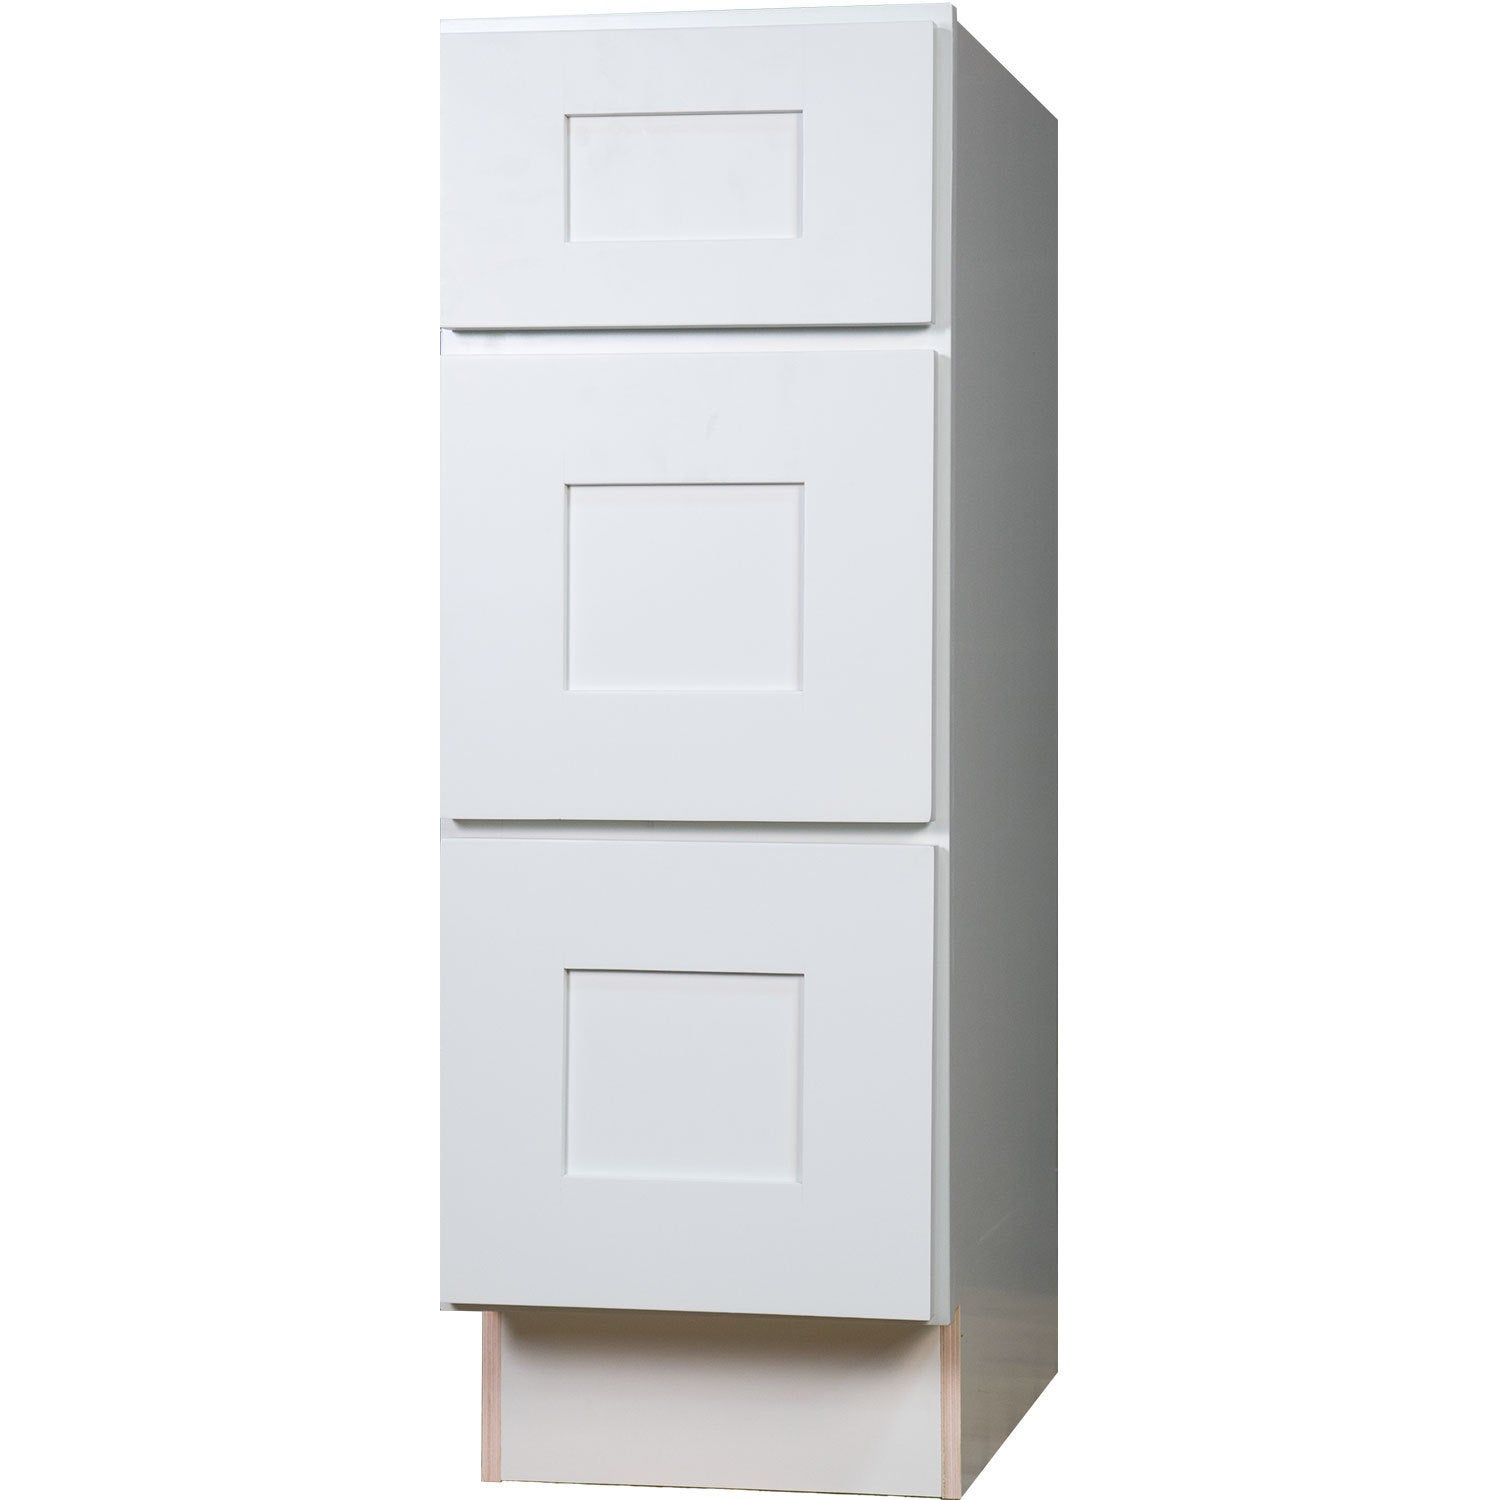 White Wood 18-inch Shaker Bathroom Vanity Drawer Base Cabinet - Free ...